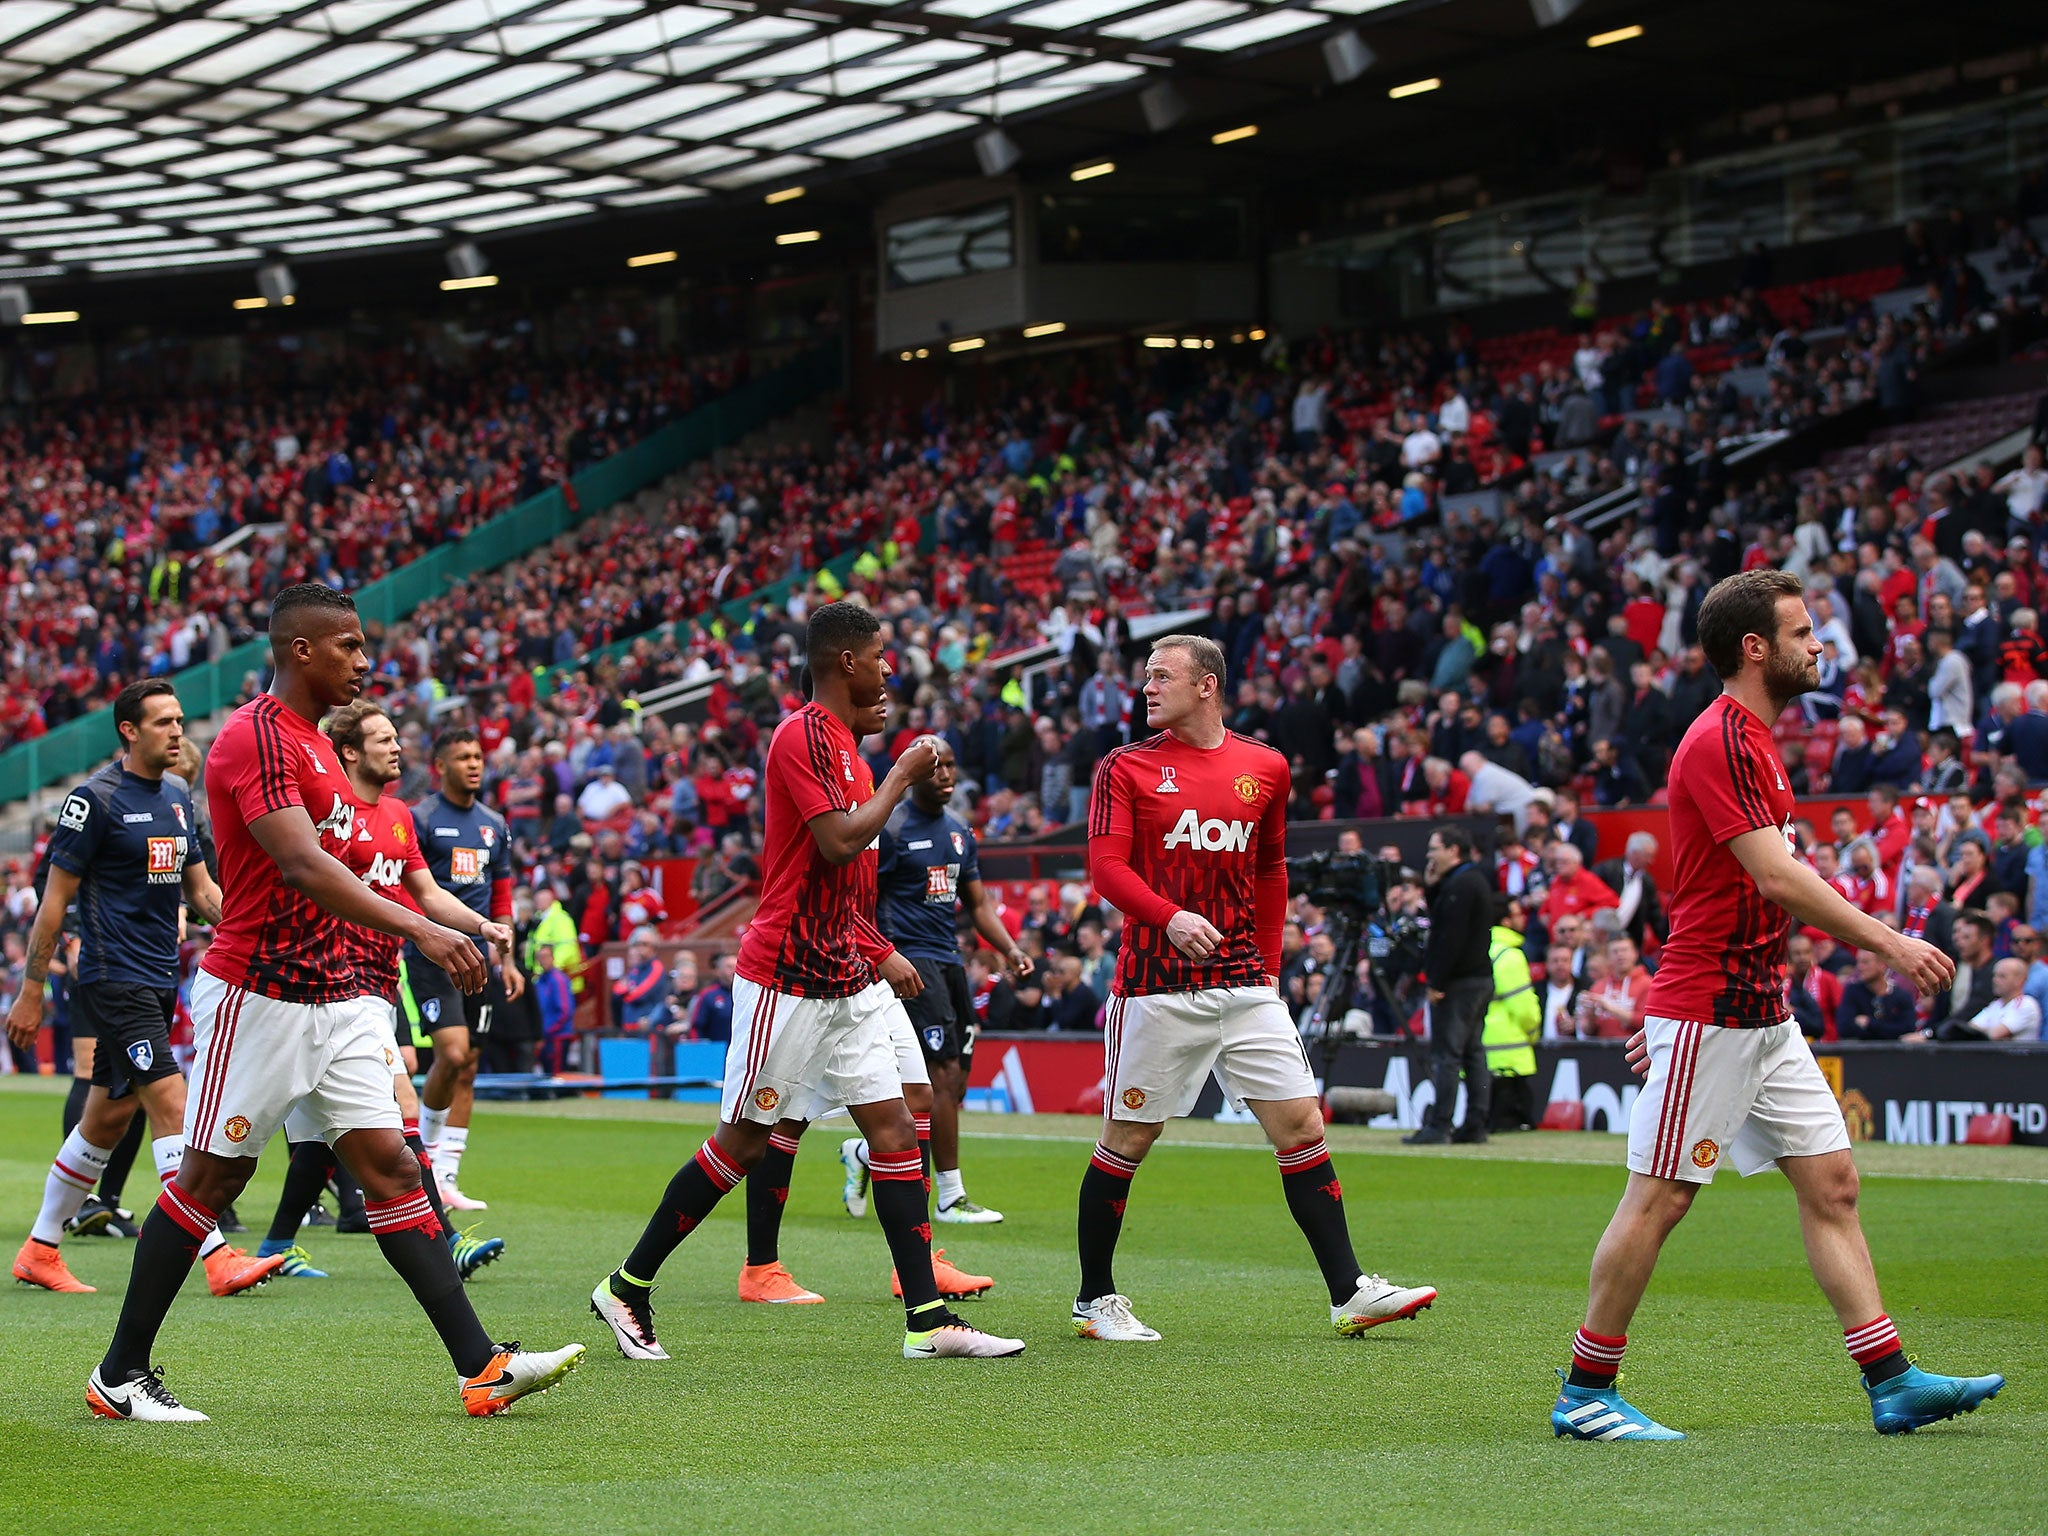 Manchester United vs Bournemouth: Can Louis van Gaal afford to rest players with FA Cup final on horizon? | Premier League | Sport | The Independent